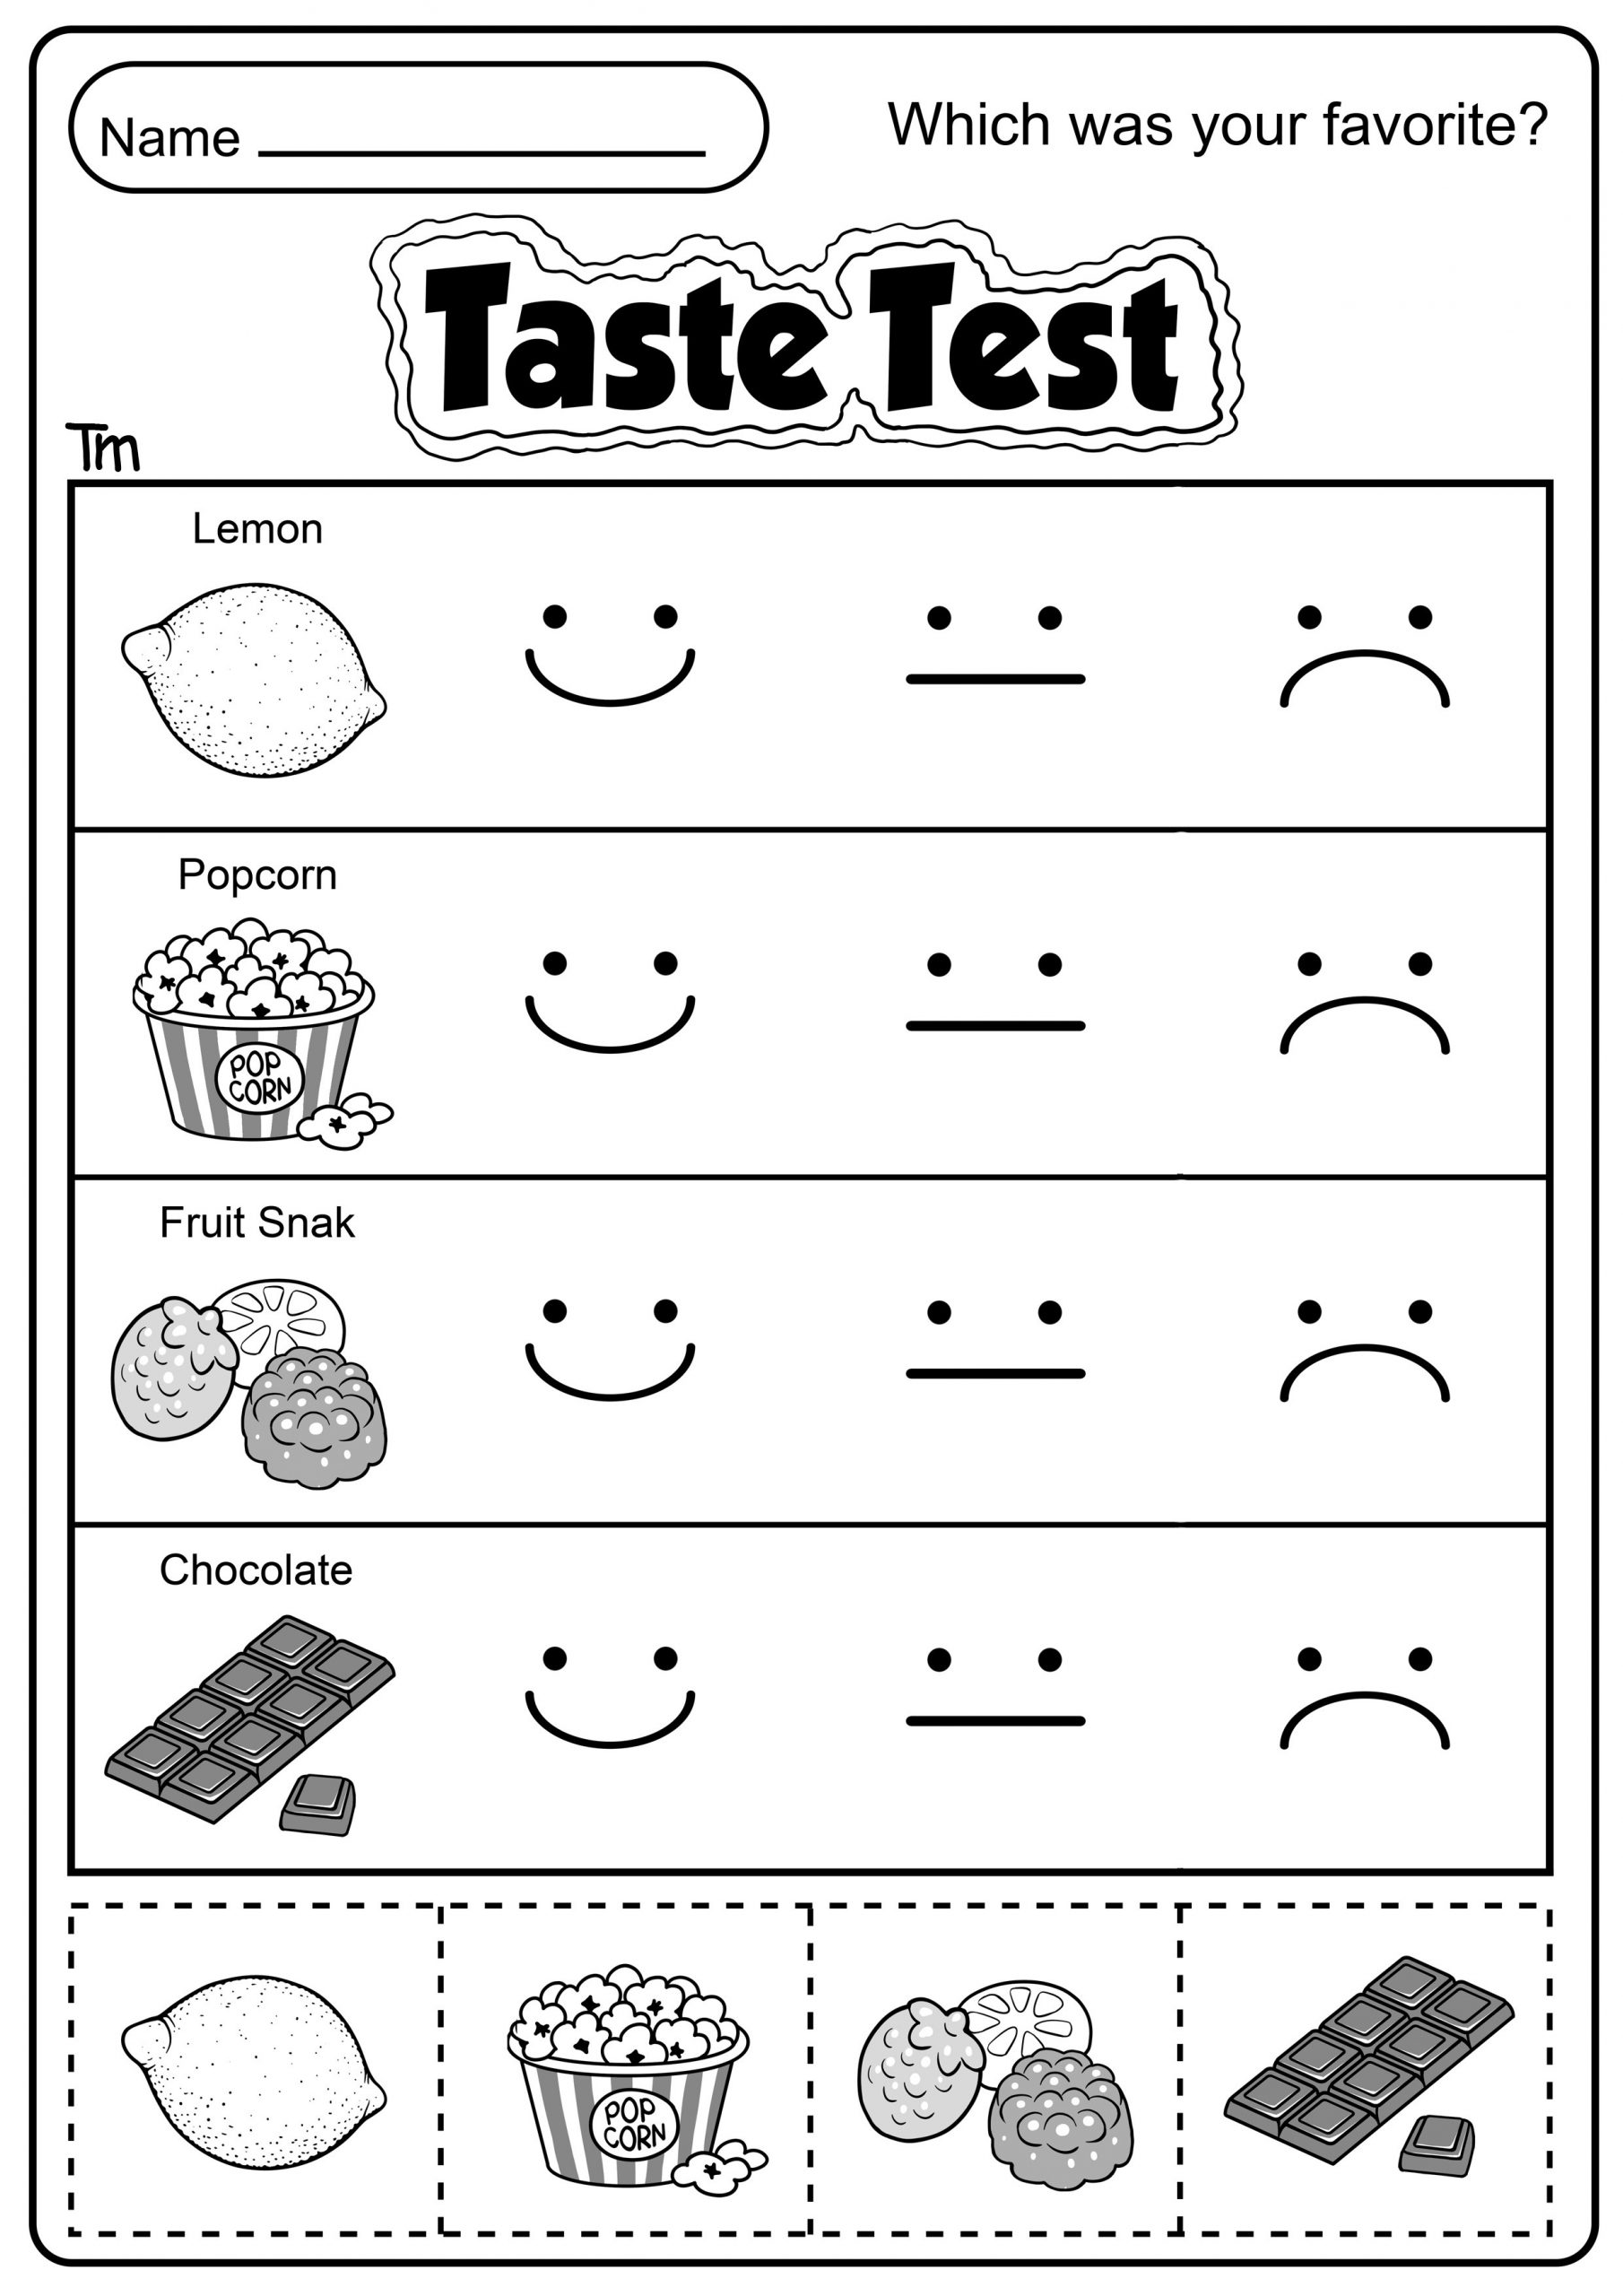 Five Senses Worksheets Preschool the Five Senses Taste Test Teachersmag